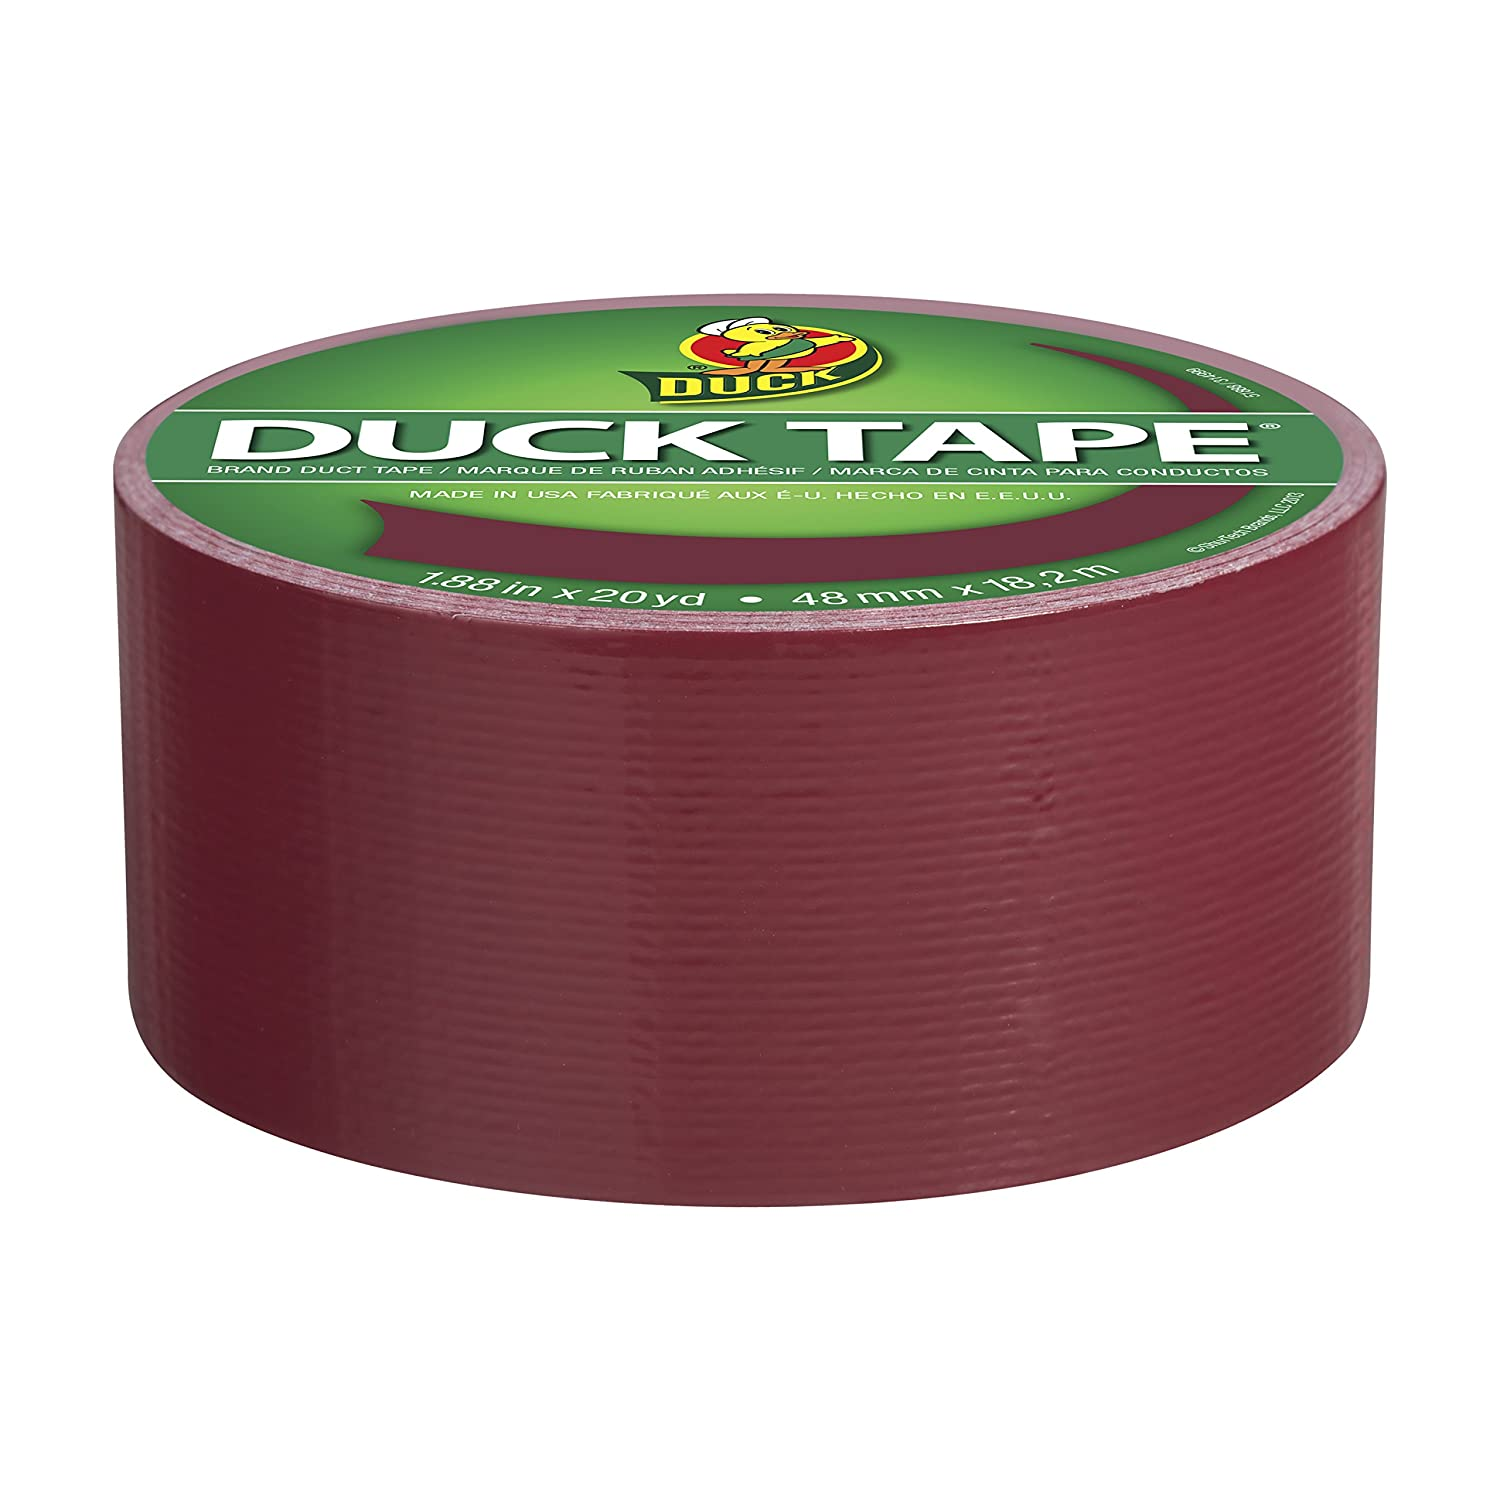 Duck 1265015 Colored Duct Tape 1.88 X 20yds 3 Core White To Win Warm Praise From Customers Business & Industrial Glues, Epoxies & Cements